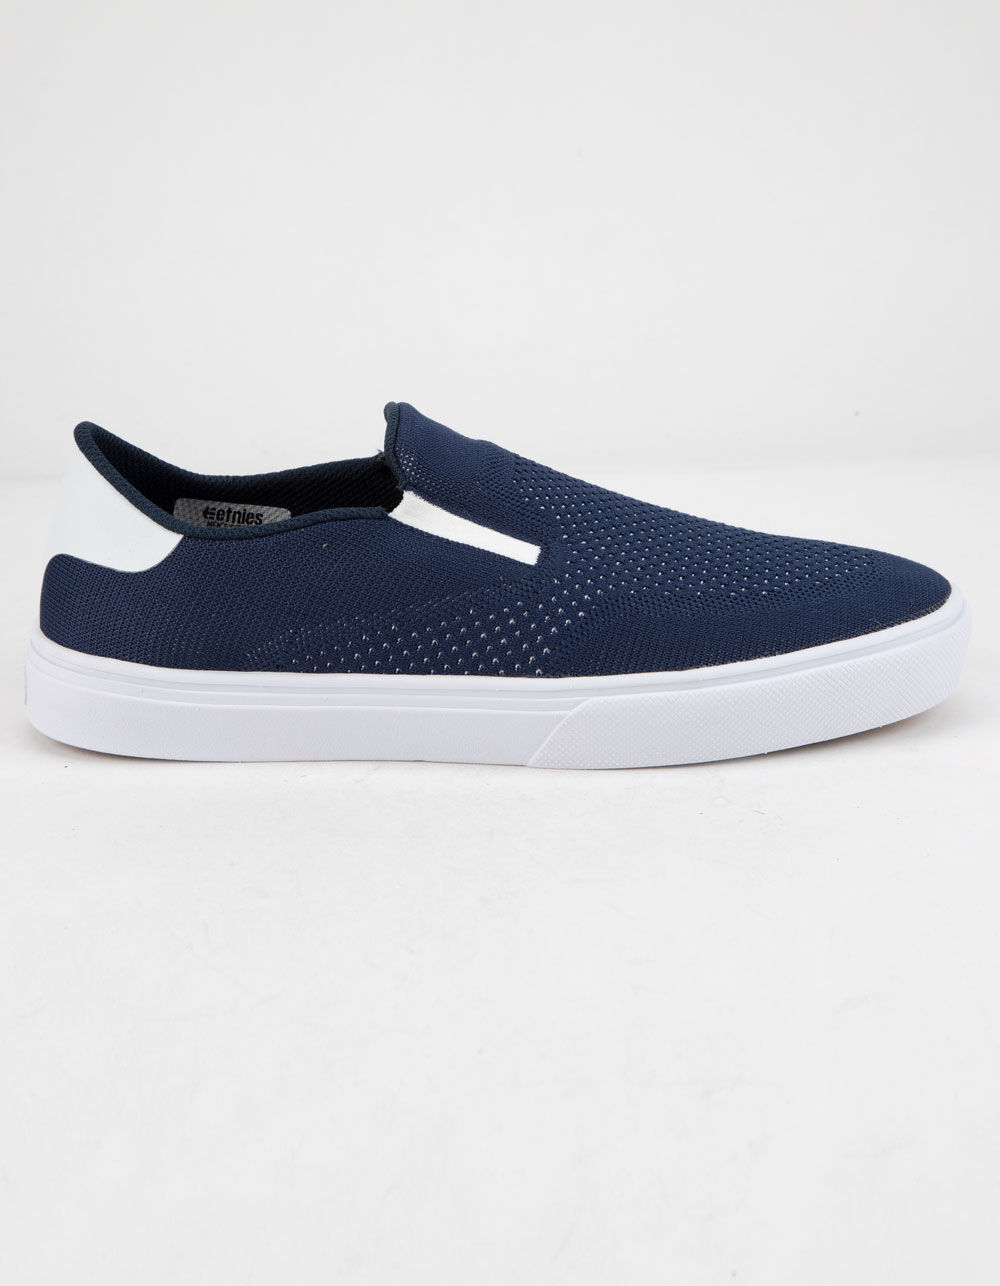 ETNIES Cirrus Navy & White Shoes